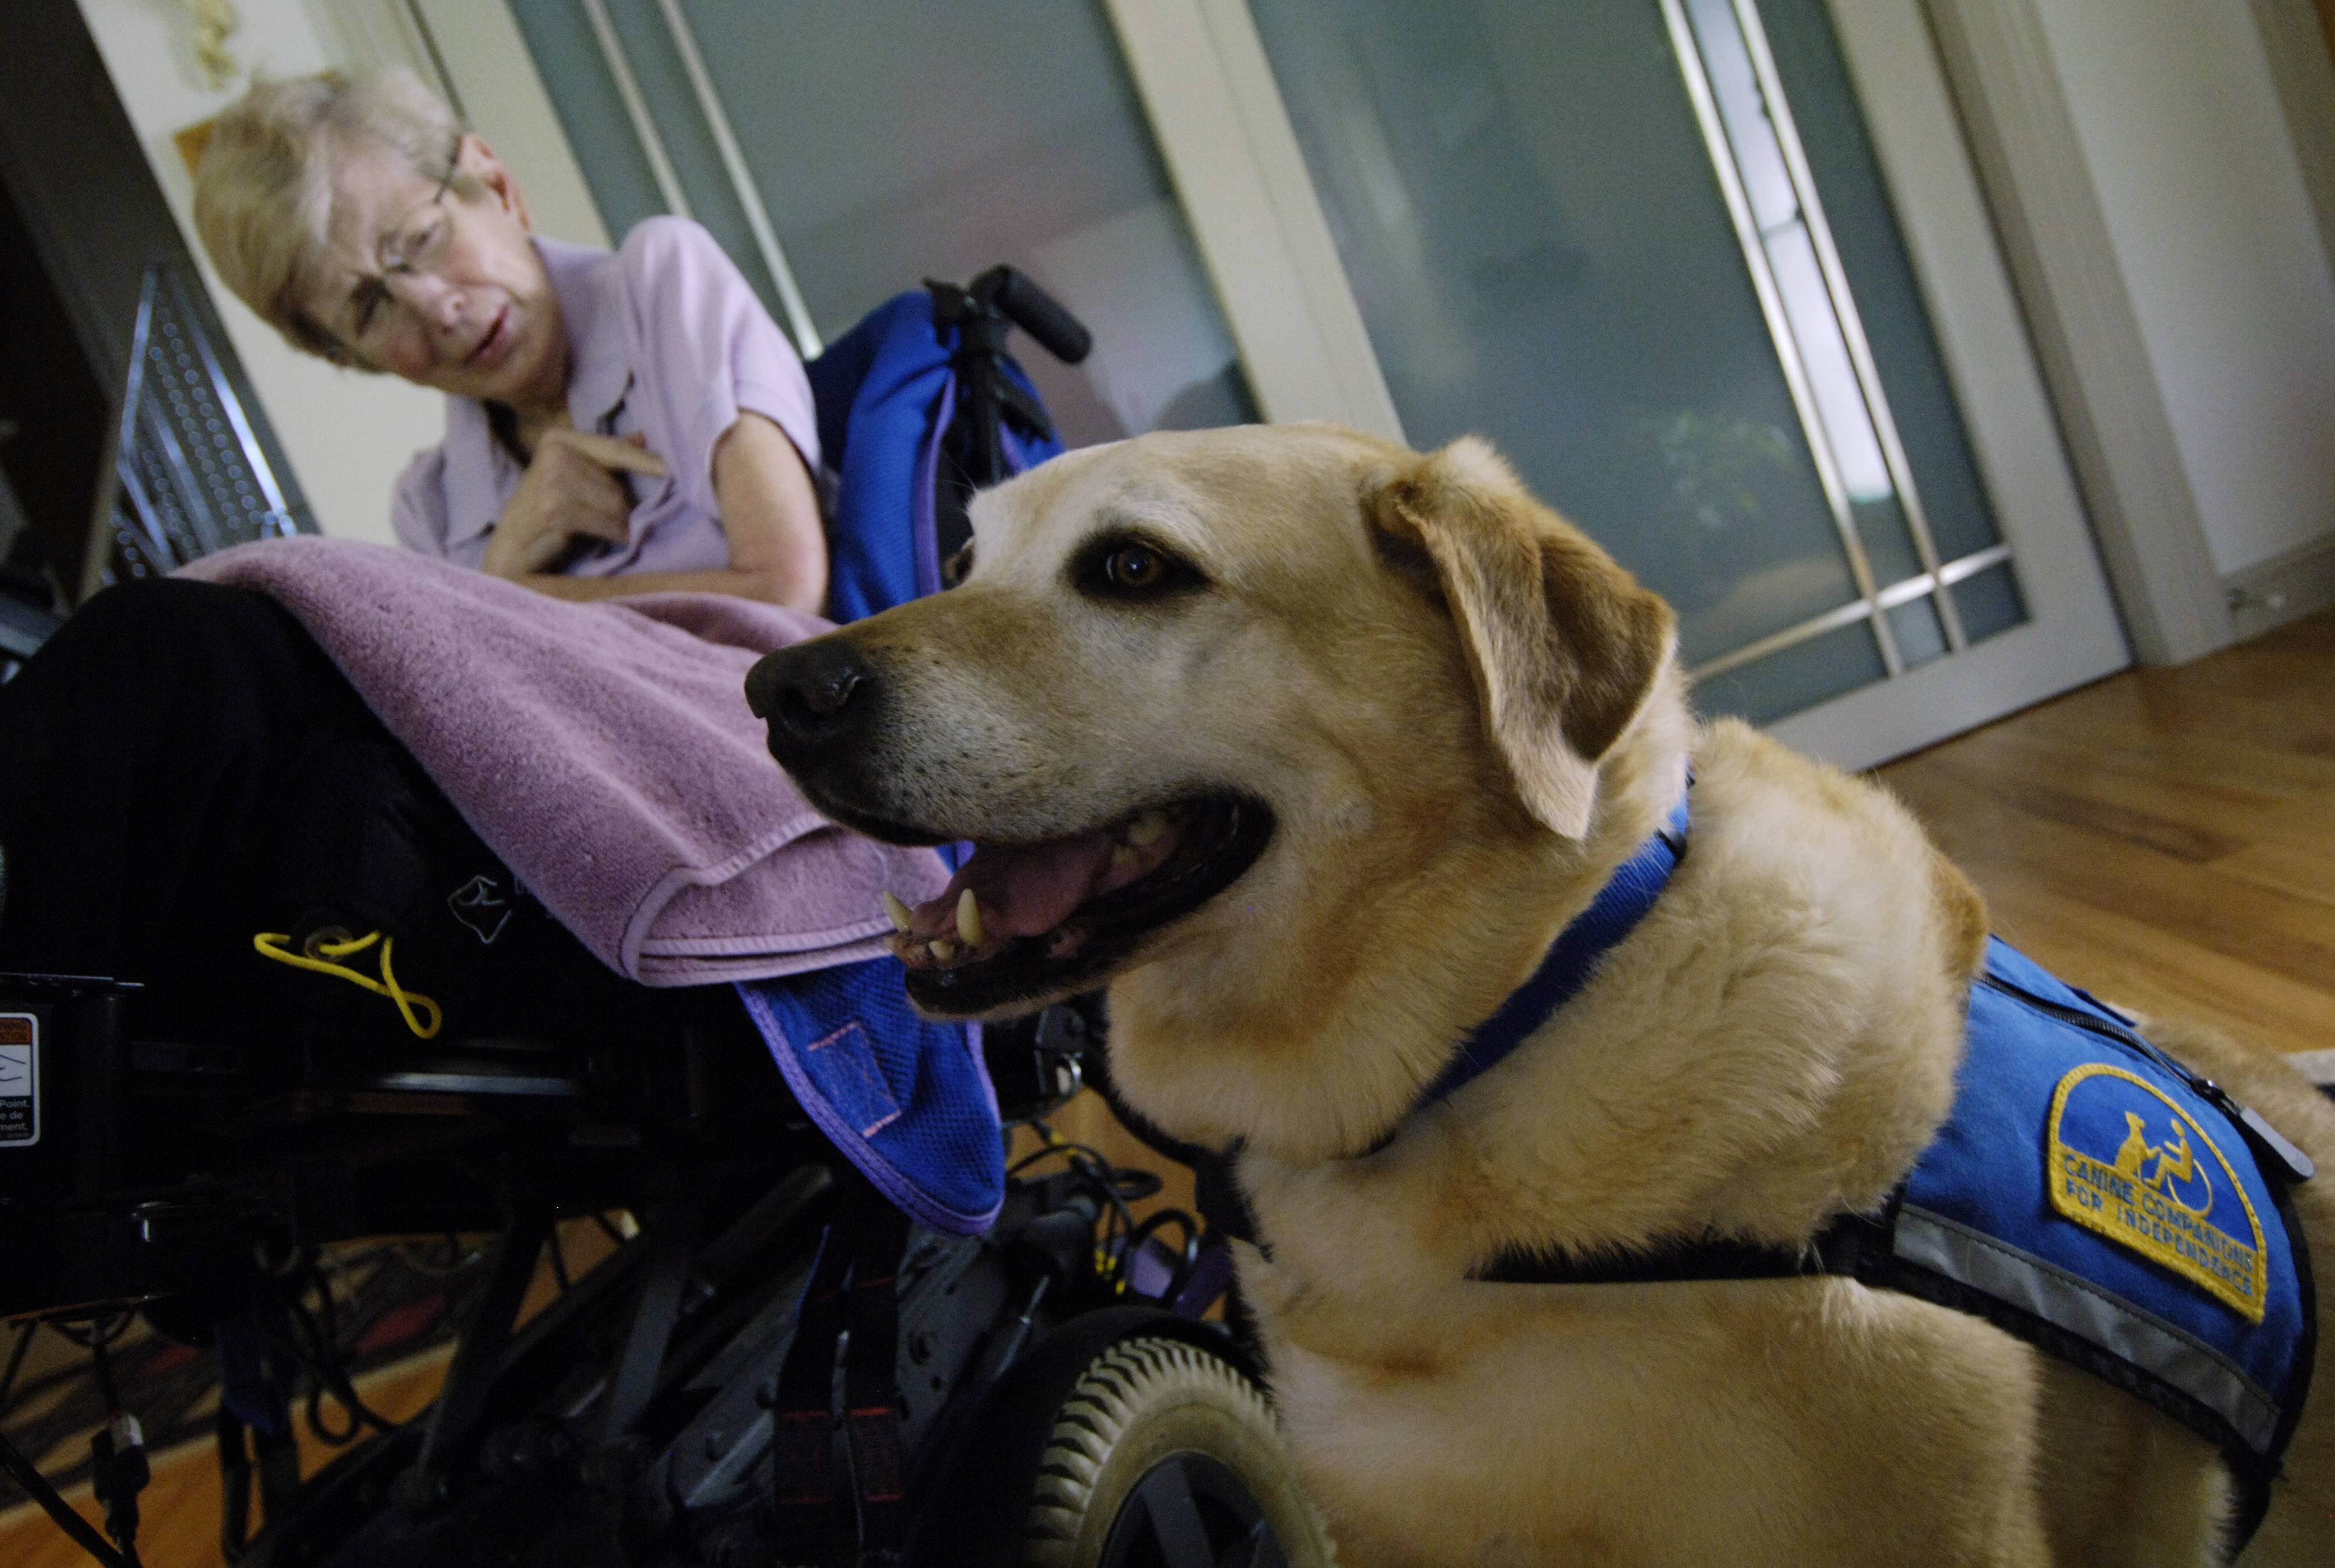 Zurich, a yellow Labrador retriever who served as the constant companion of Des Plaines resident Patti Kennedy, has died. He received a national service dog award in 2011.